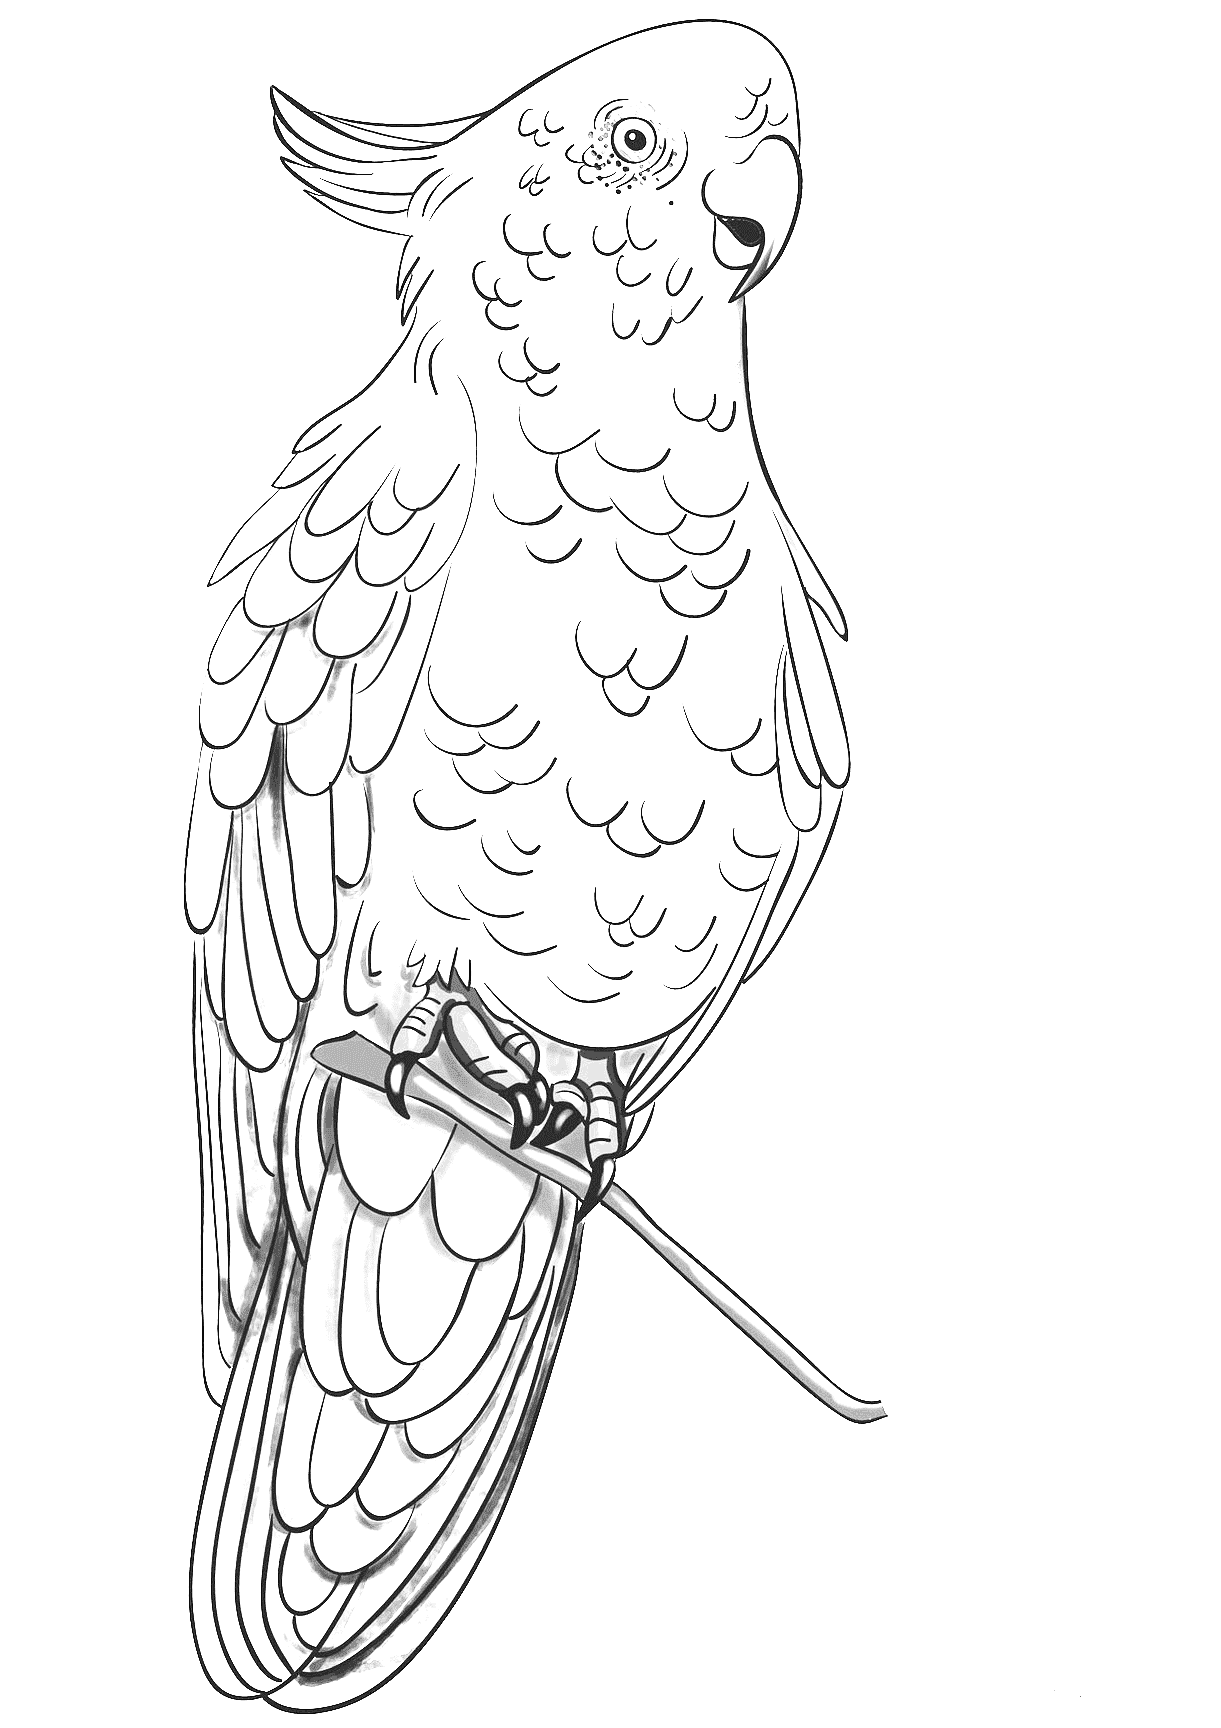 Rose breasted cockatoo coloring page